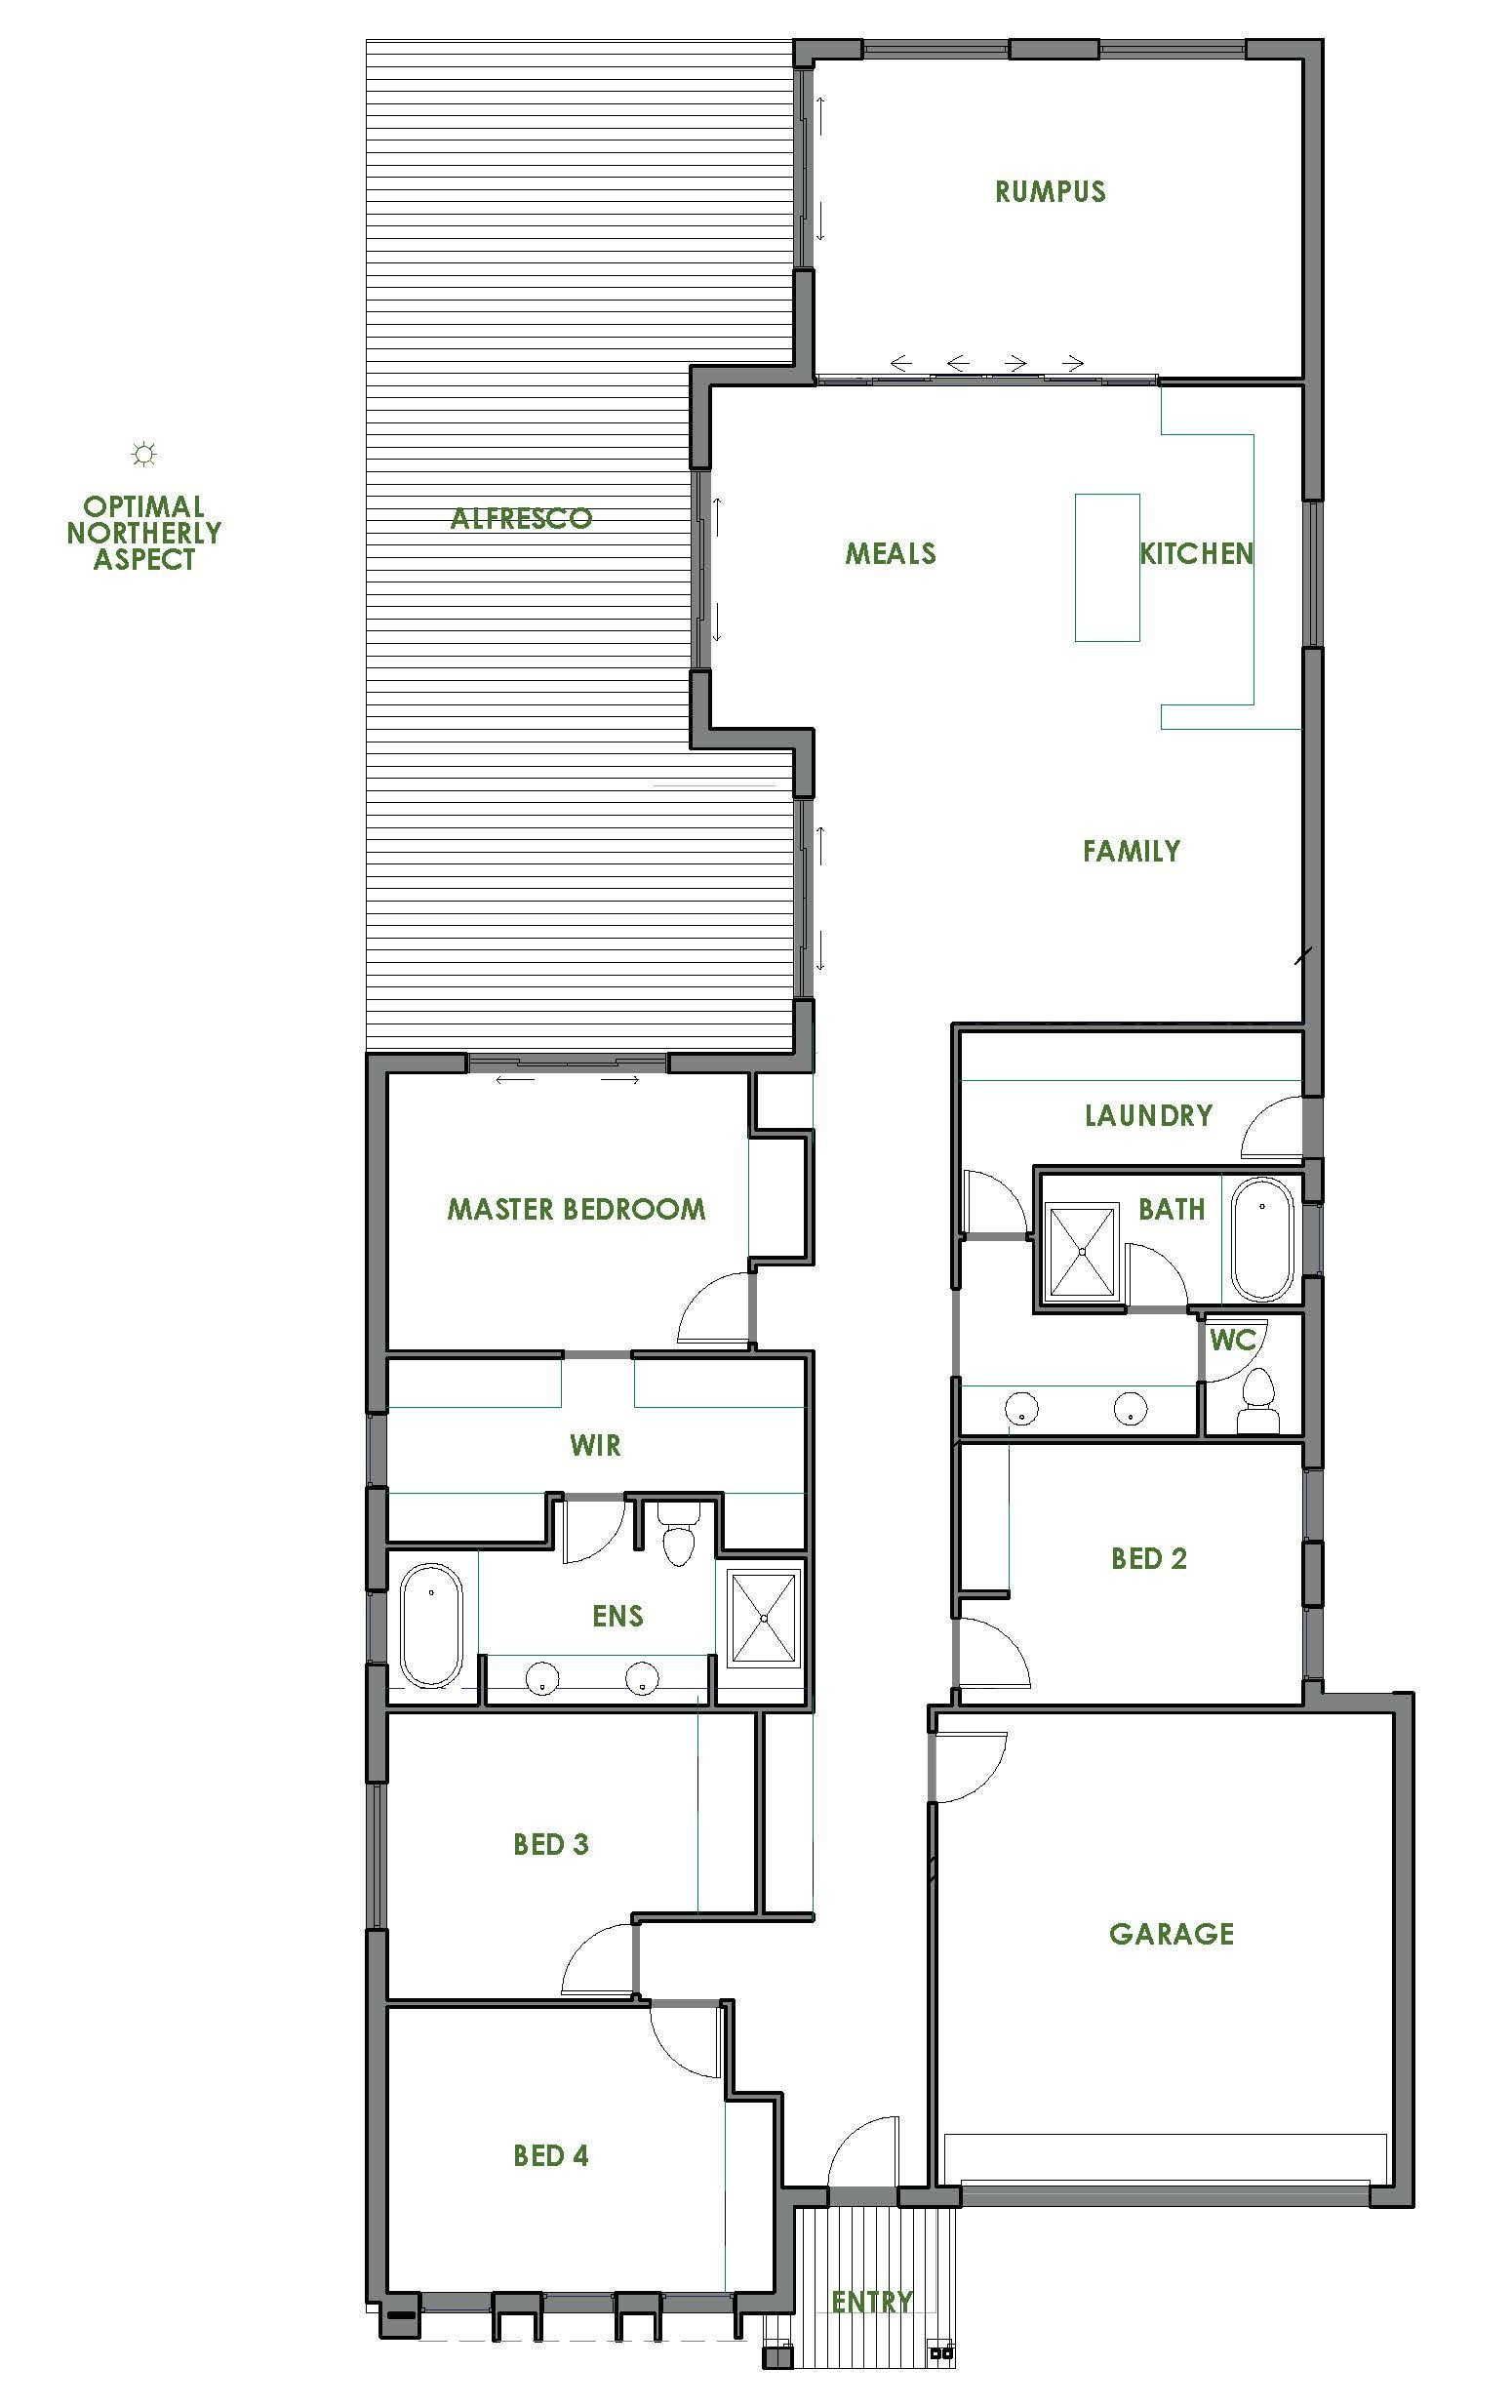 The Rosedale home design is contemporary, affordable and